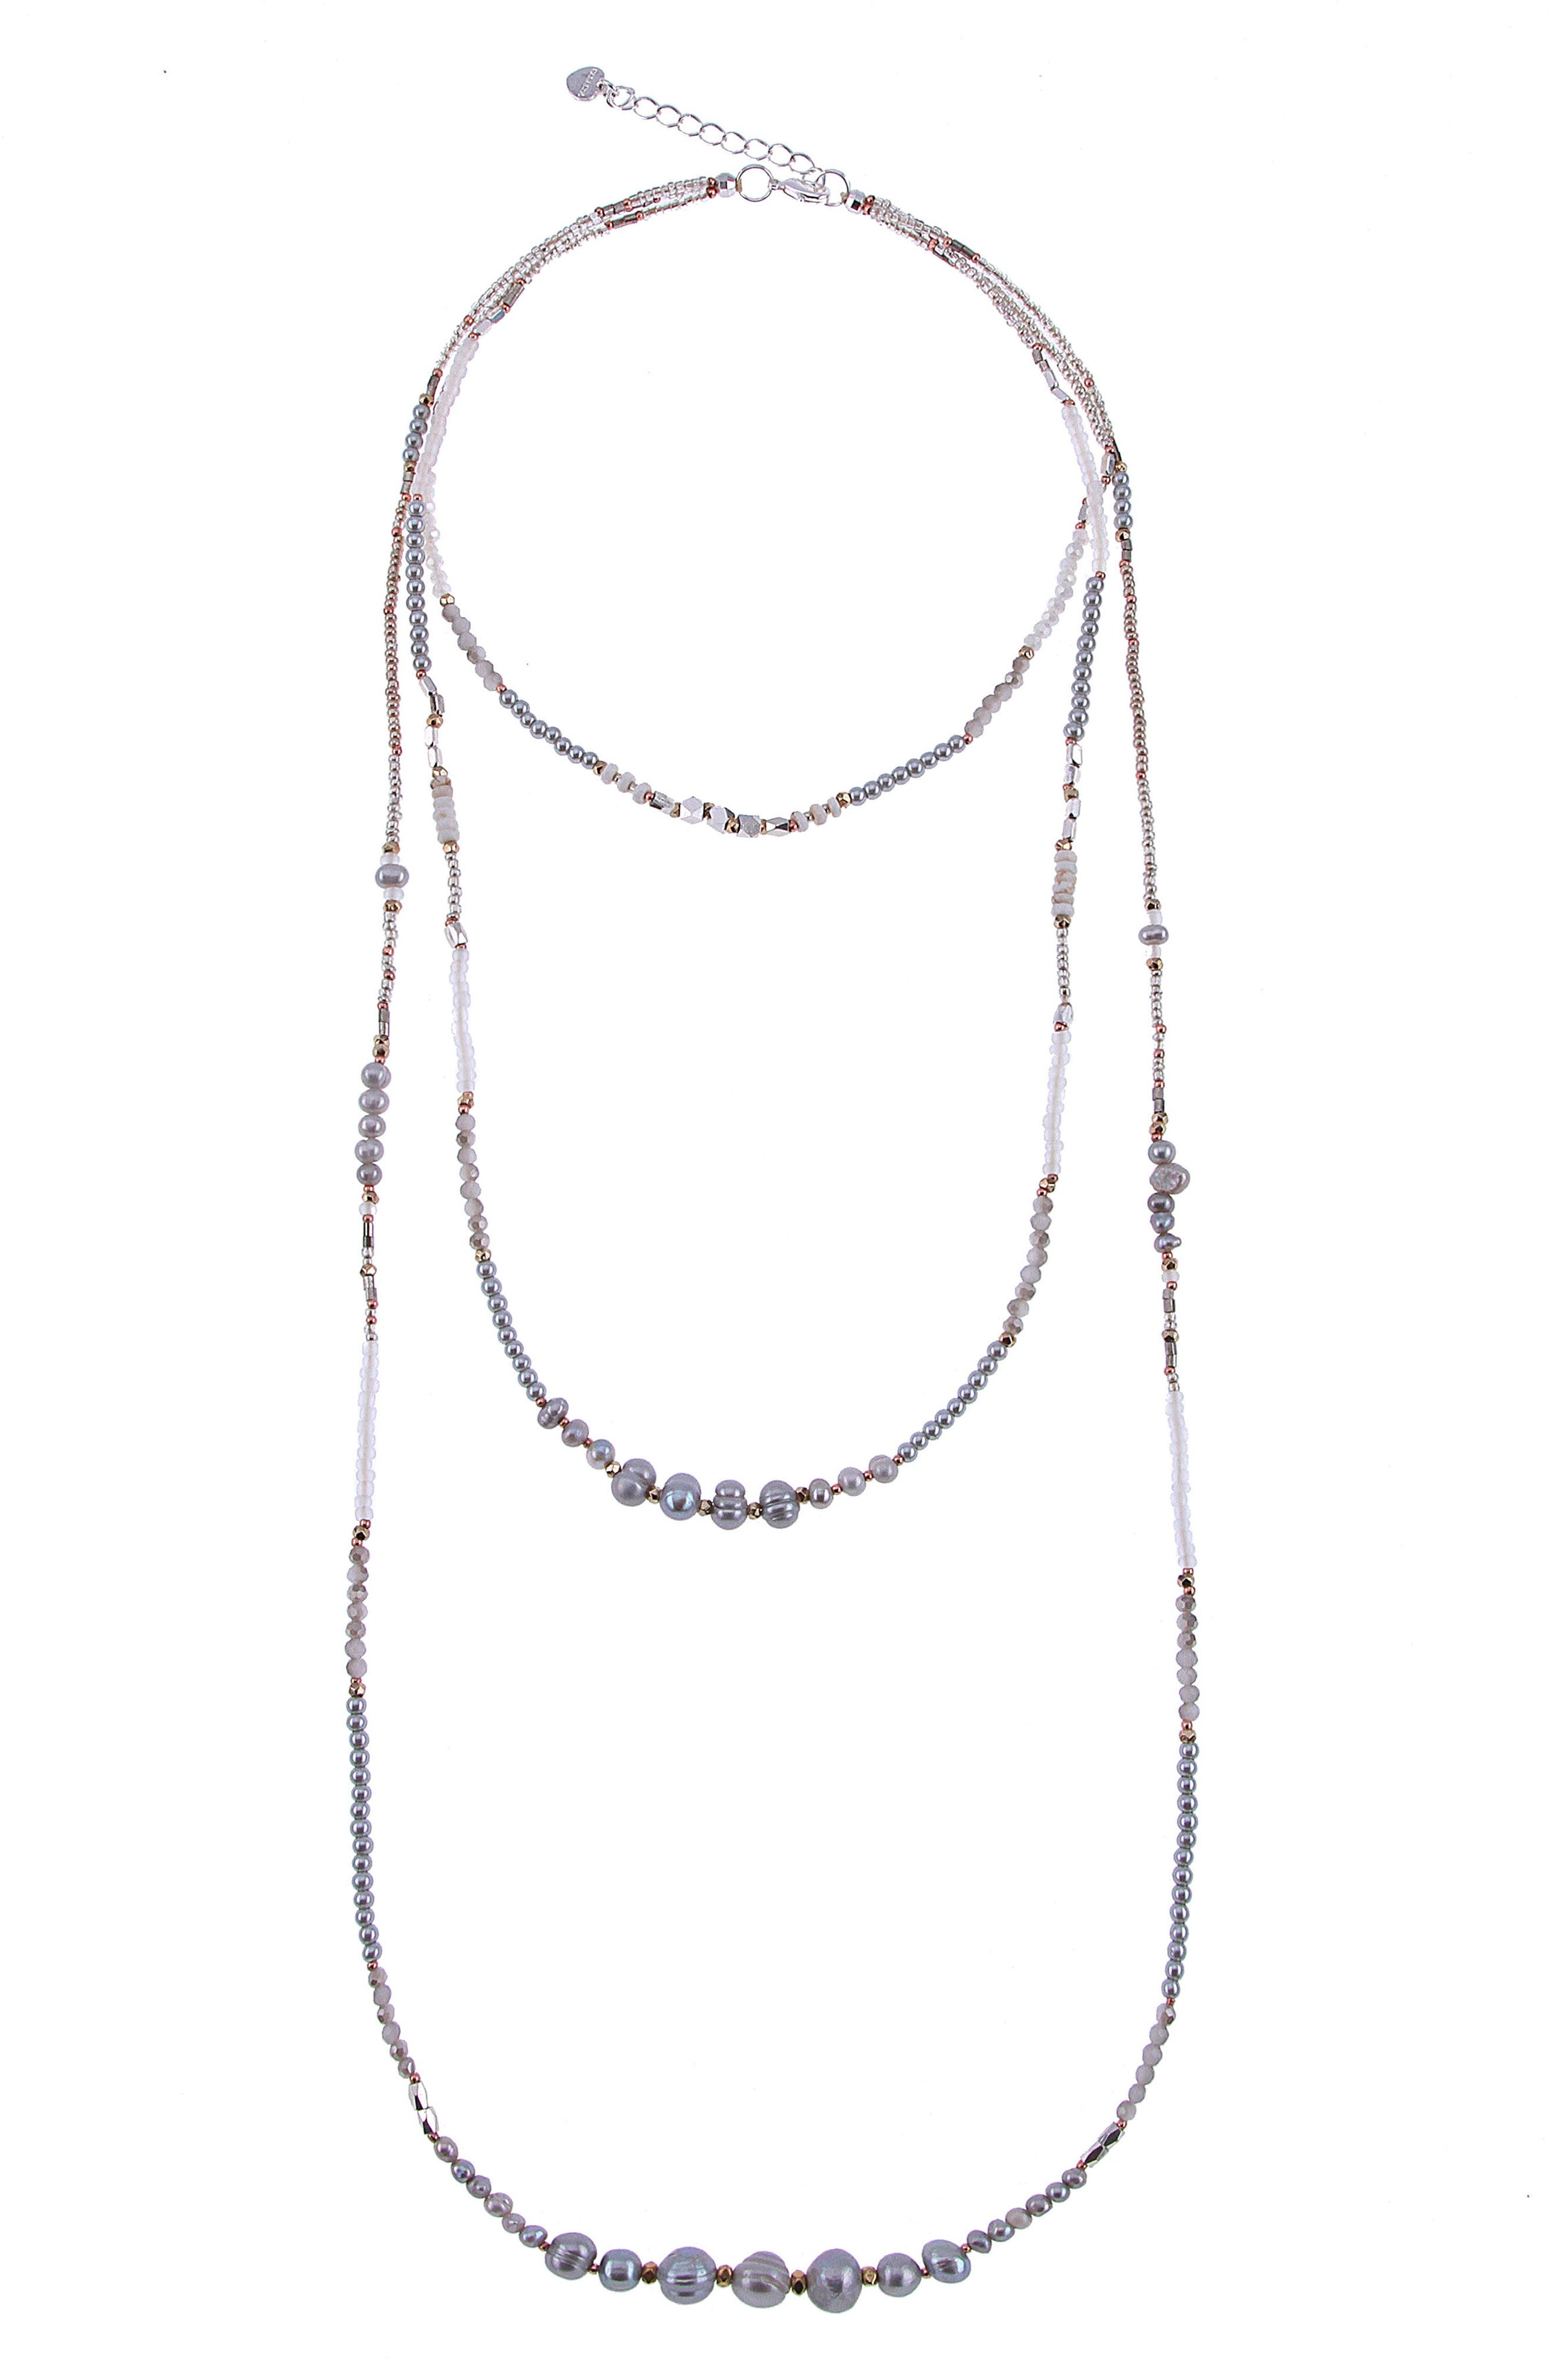 Triple Strand Beaded Freshwater Pearl Necklace,                         Main,                         color, Silver